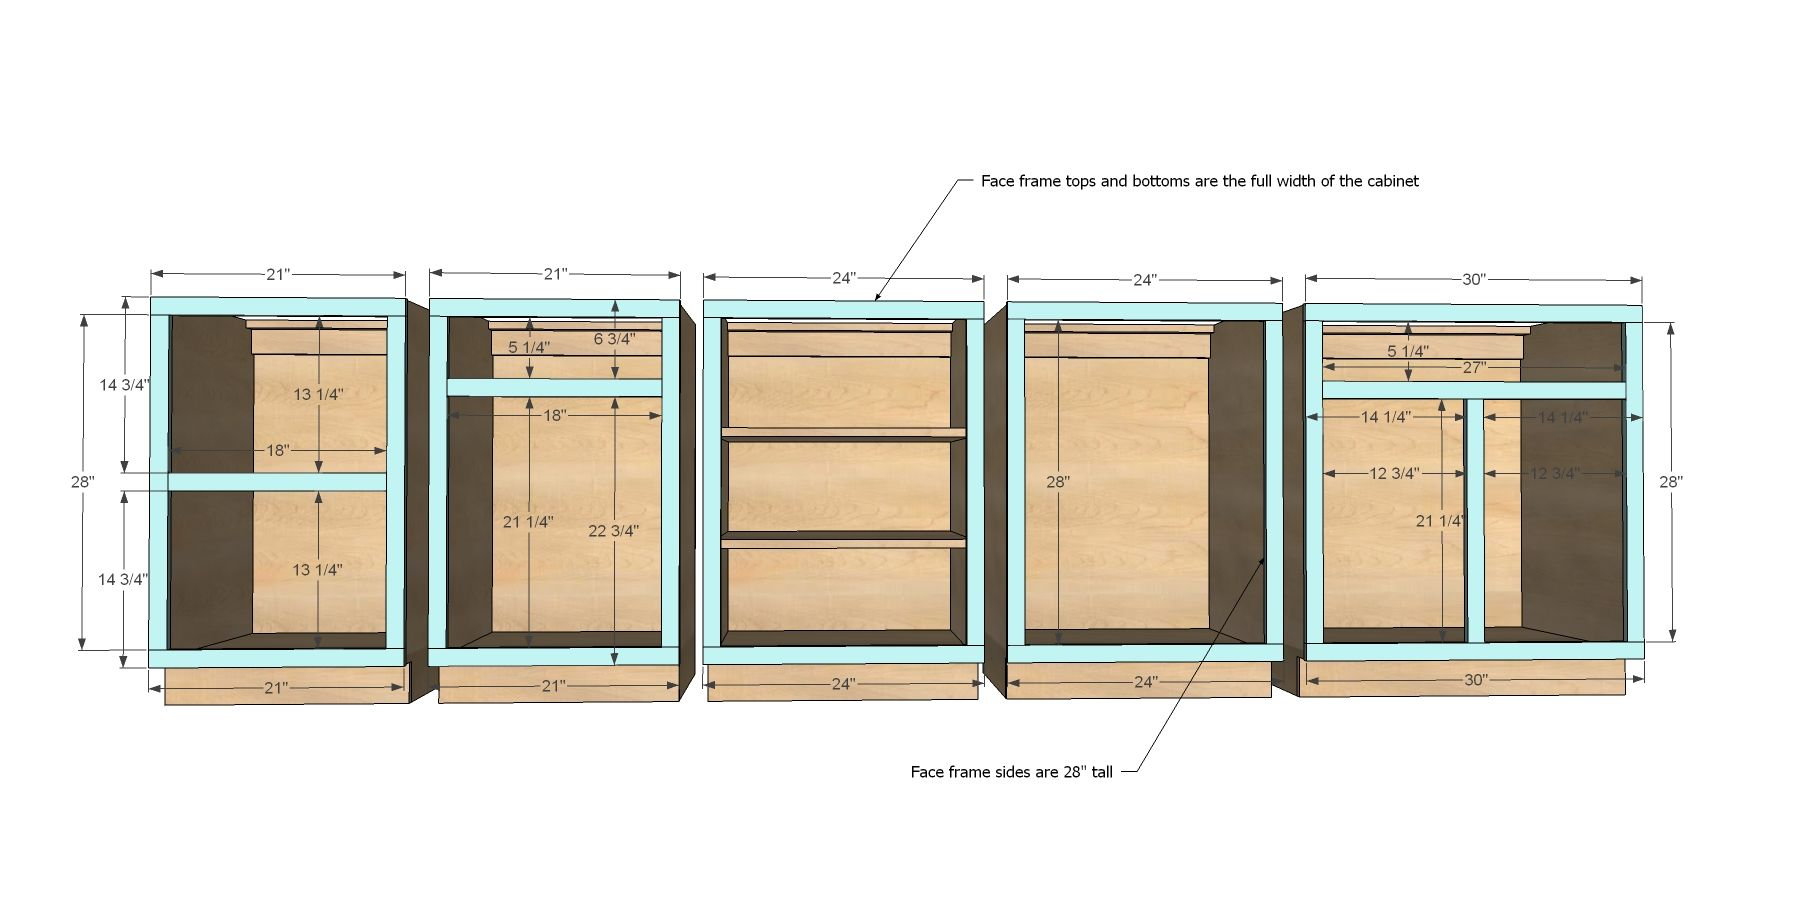 Ana white build a face frame base kitchen cabinet for Diy hutch plans